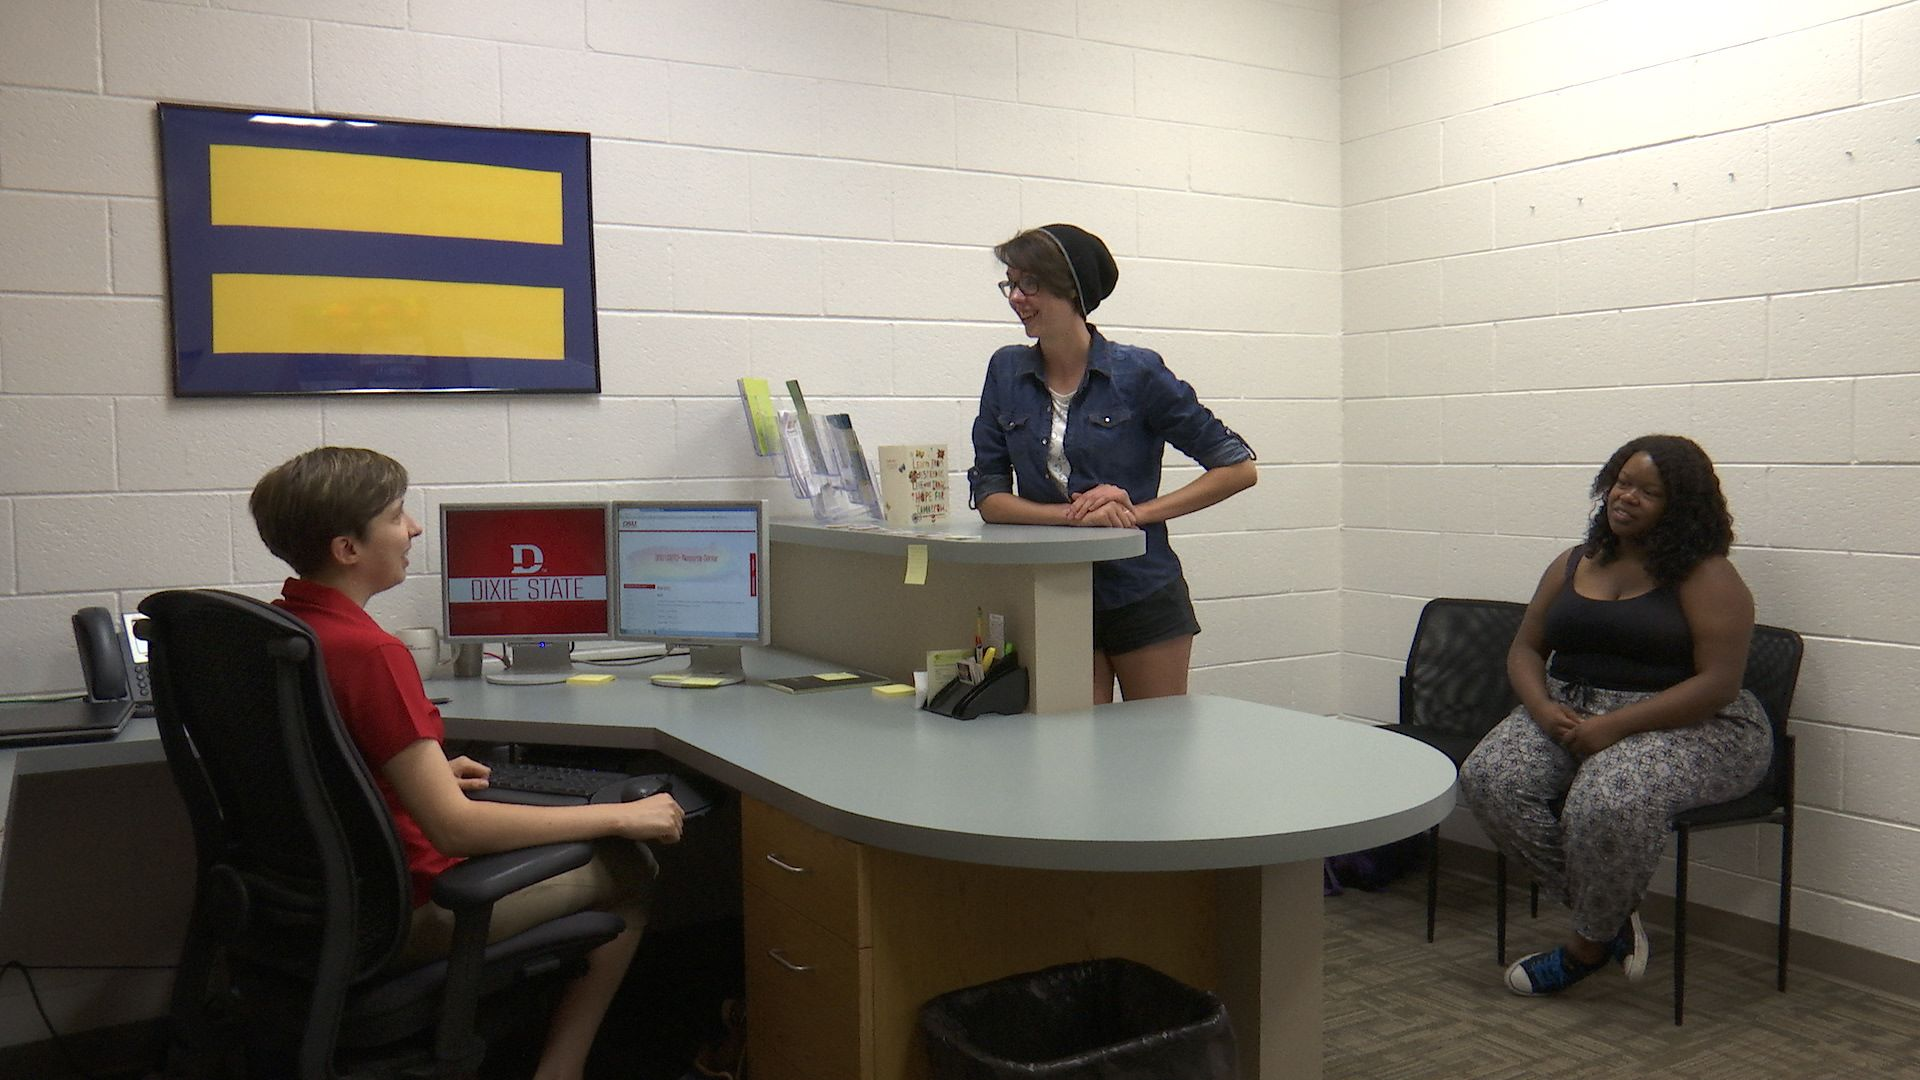 As a way to help provide a safe and inclusive environment for LGBT students, staff and faculty, Dixie State University established the LGBT+ Resource Center as a part of its Multicultural Inclusion Center, St. George, Utah, Aug. 26, 2016 | Photo by Sheldon Demke, St. George News